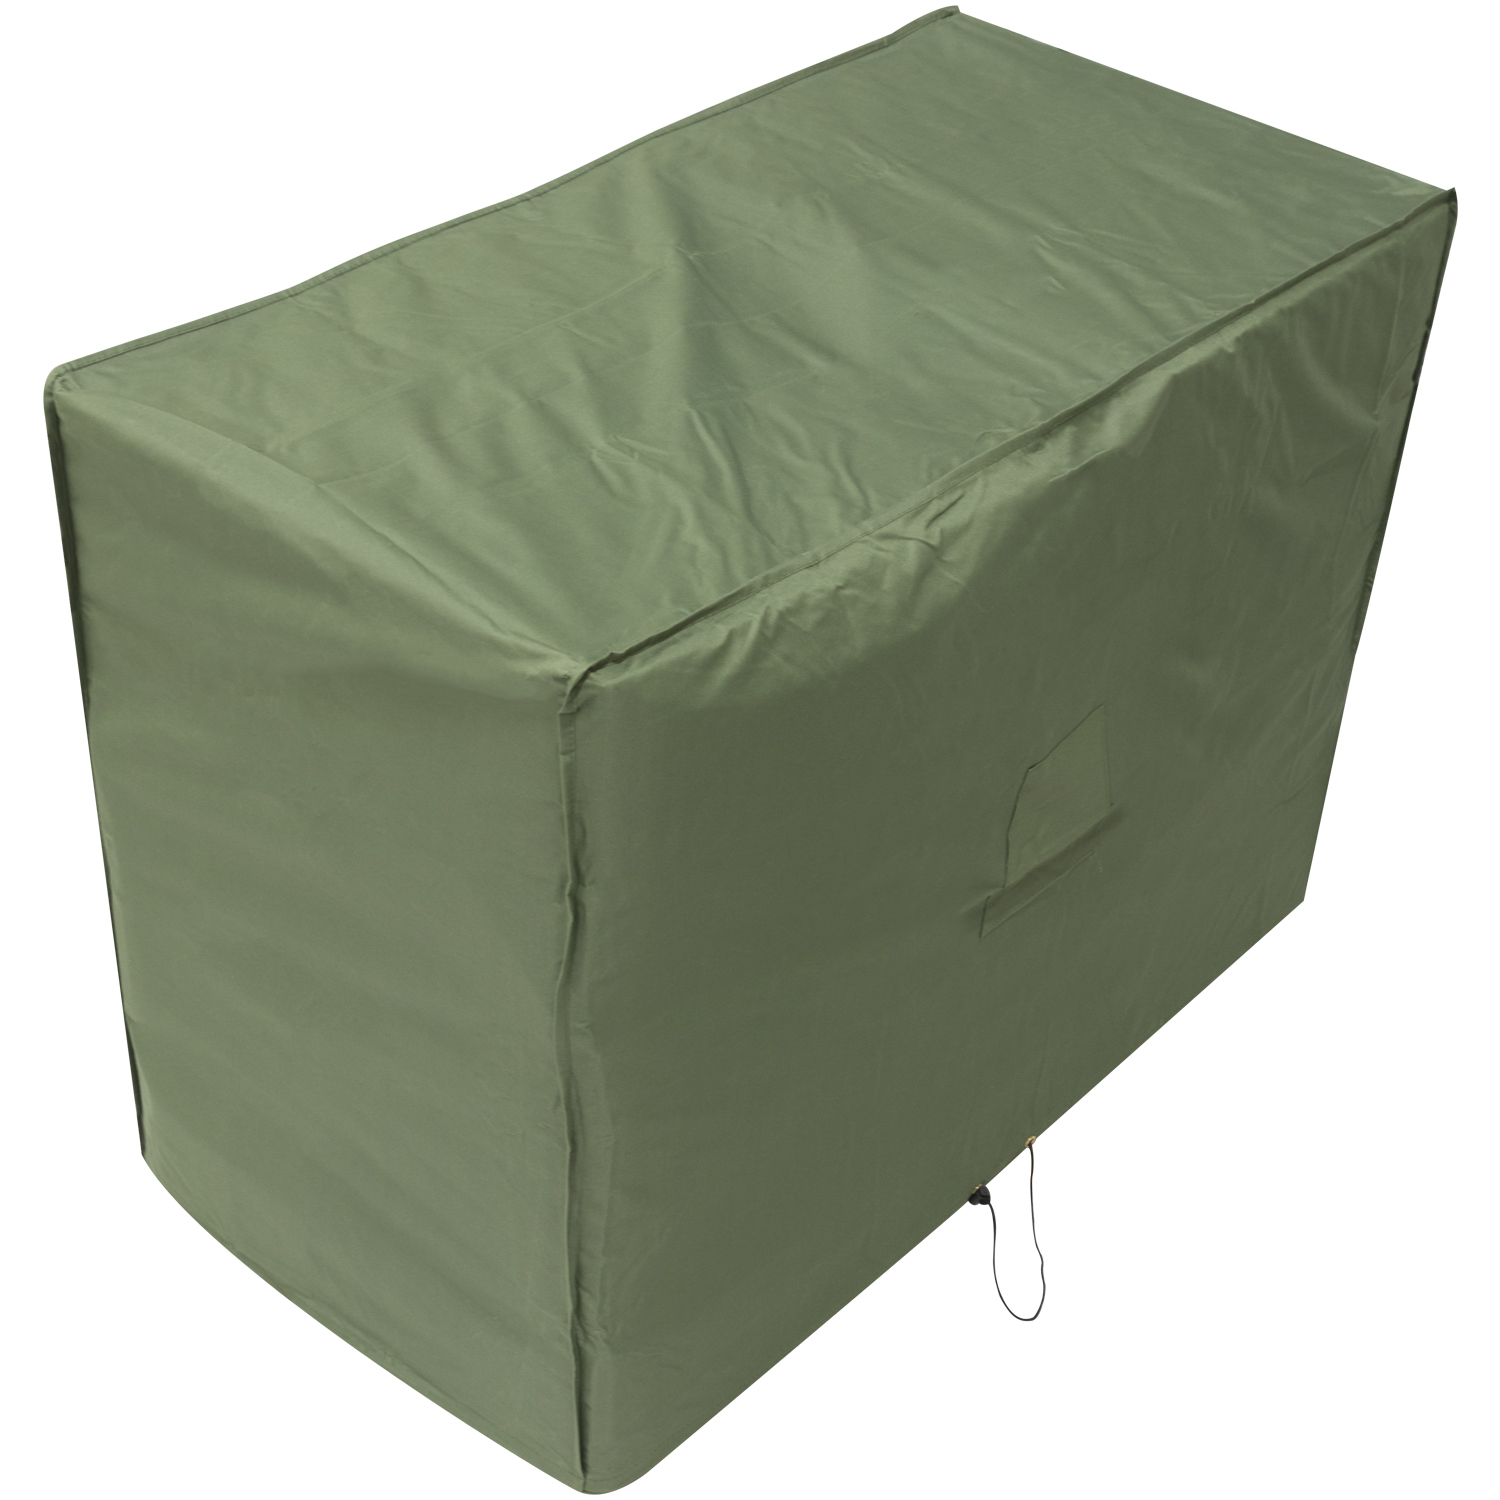 Woodside 2 Seater 1.2m 4ft Waterproof Garden Bench Furniture Seat Cover